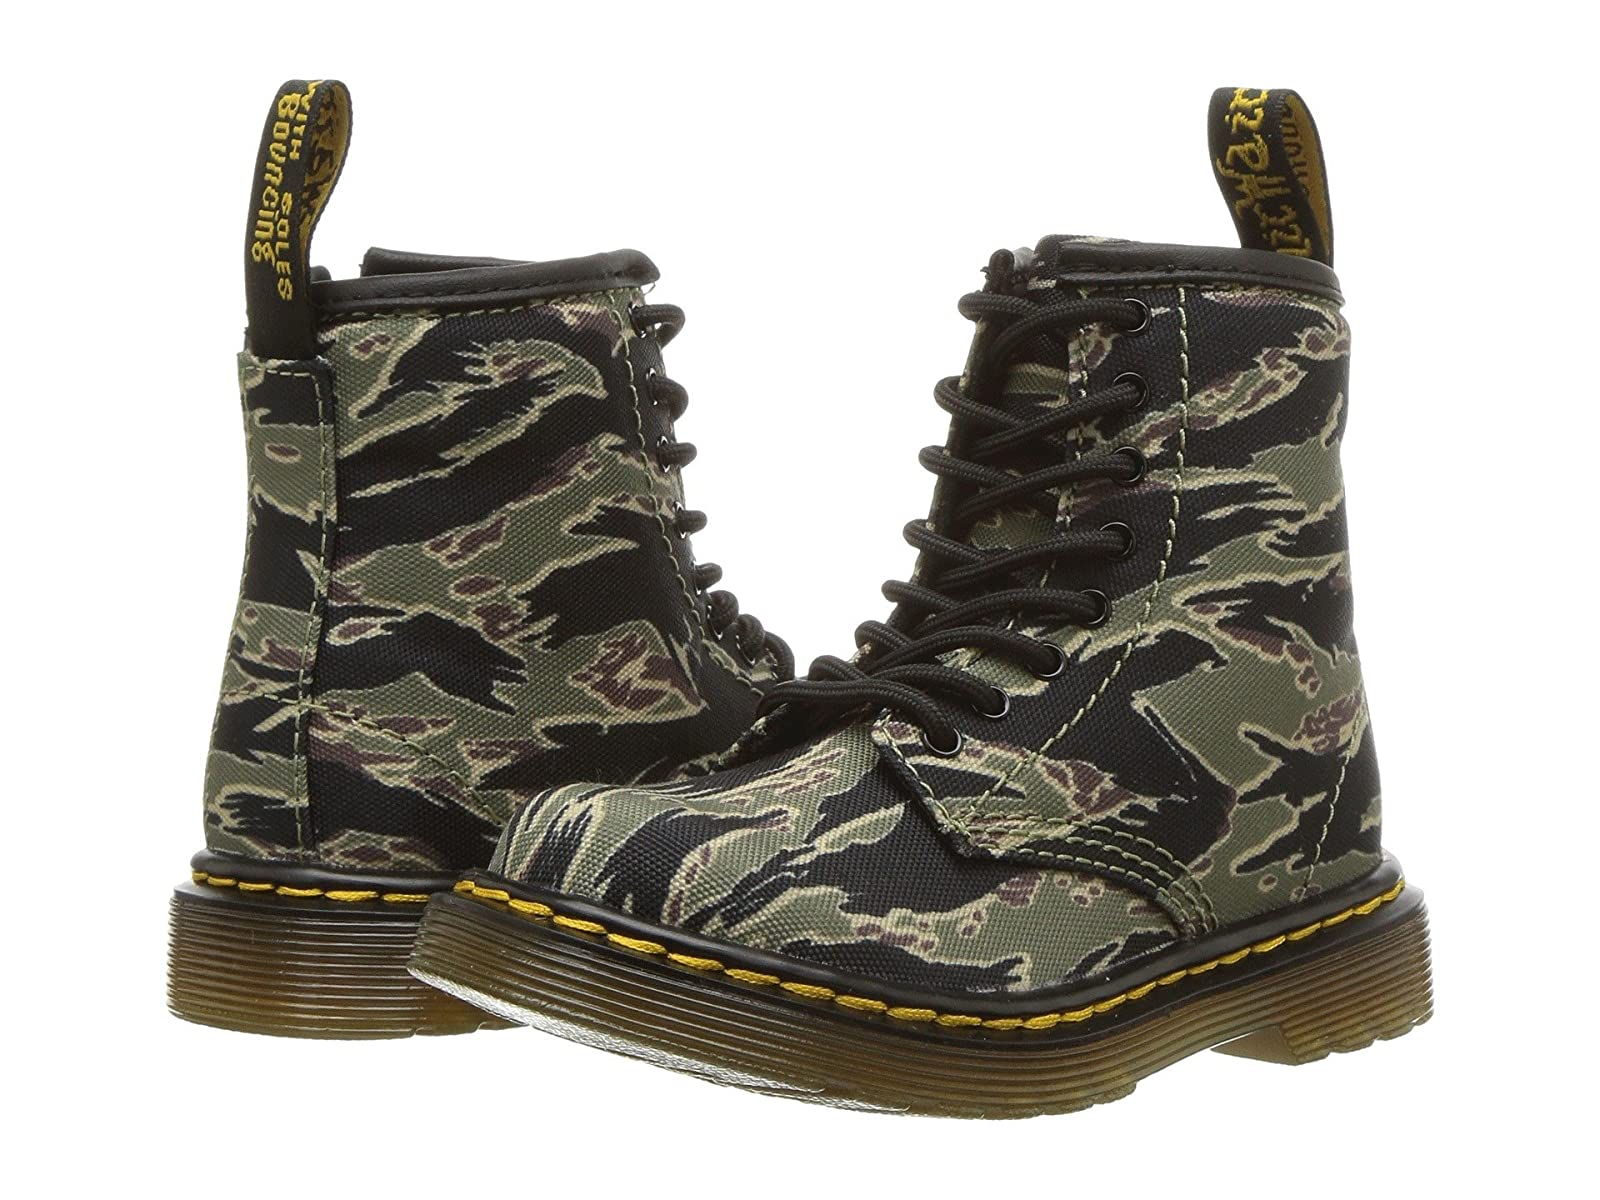 Dr. Martens Kid's Collection 1460 Camo (Toddler)Affordable and distinctive shoes